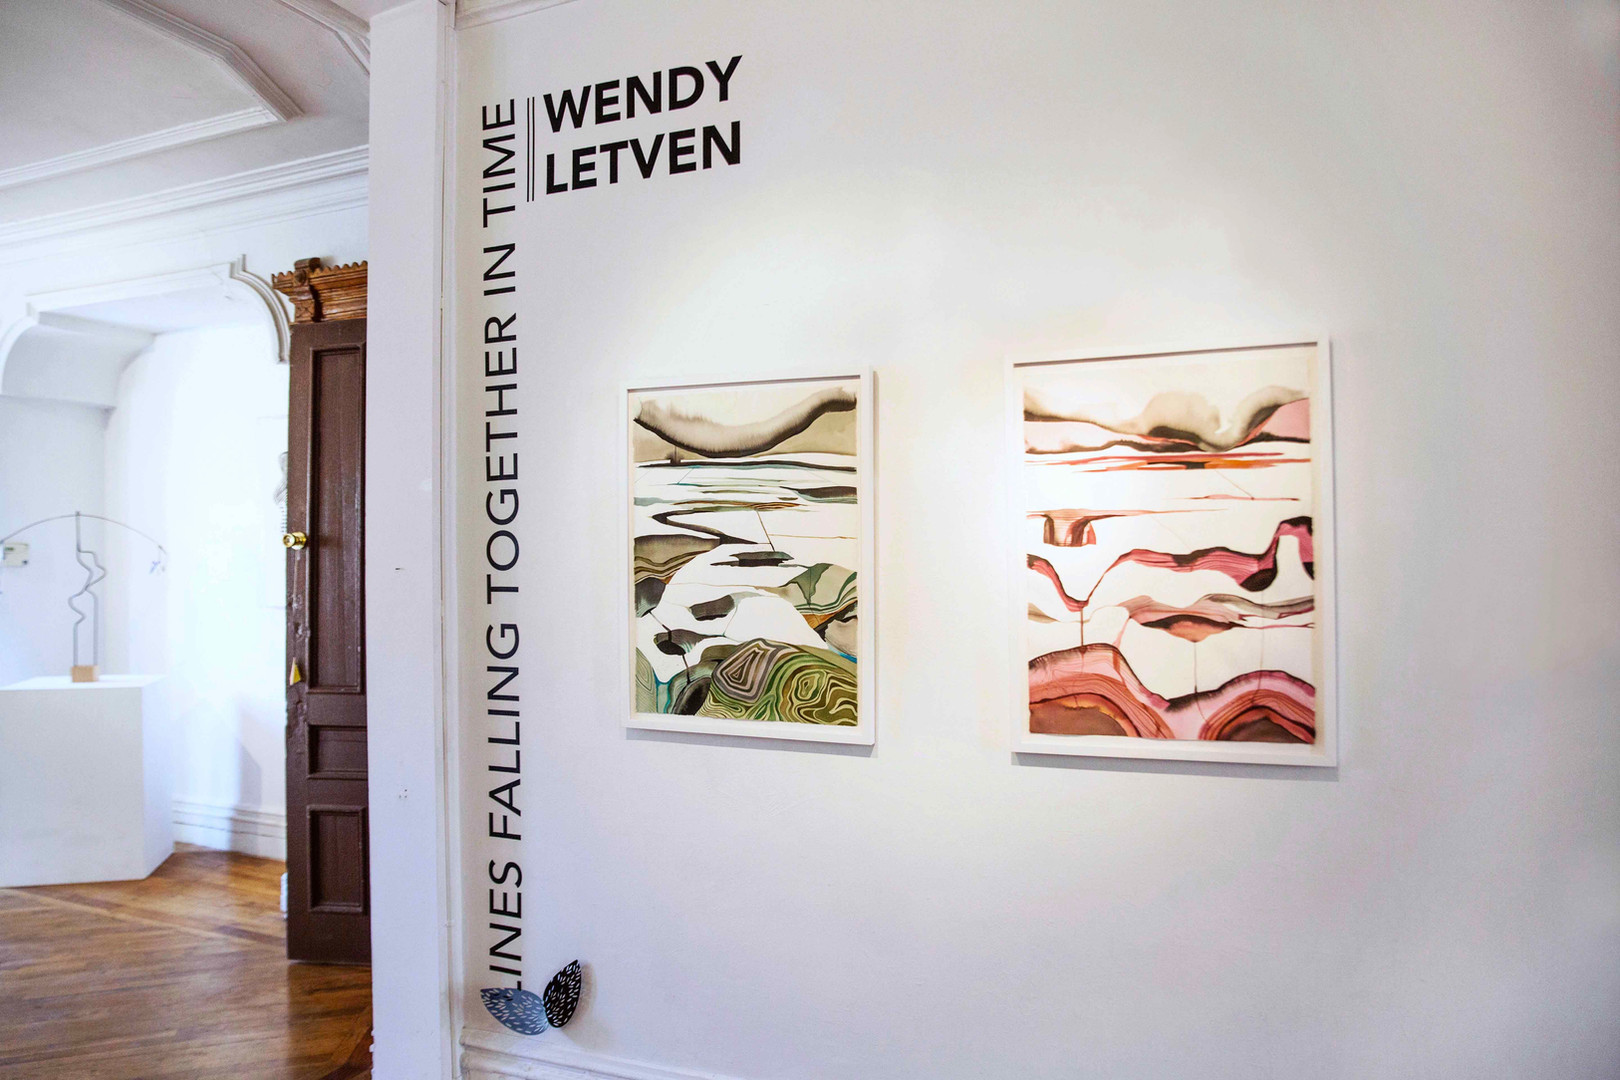 Wendy Letven: Lines Falling Together in Time installation view. Photograph by Lynn Hai. ©Wendy Letven, courtesy Fou Gallery.